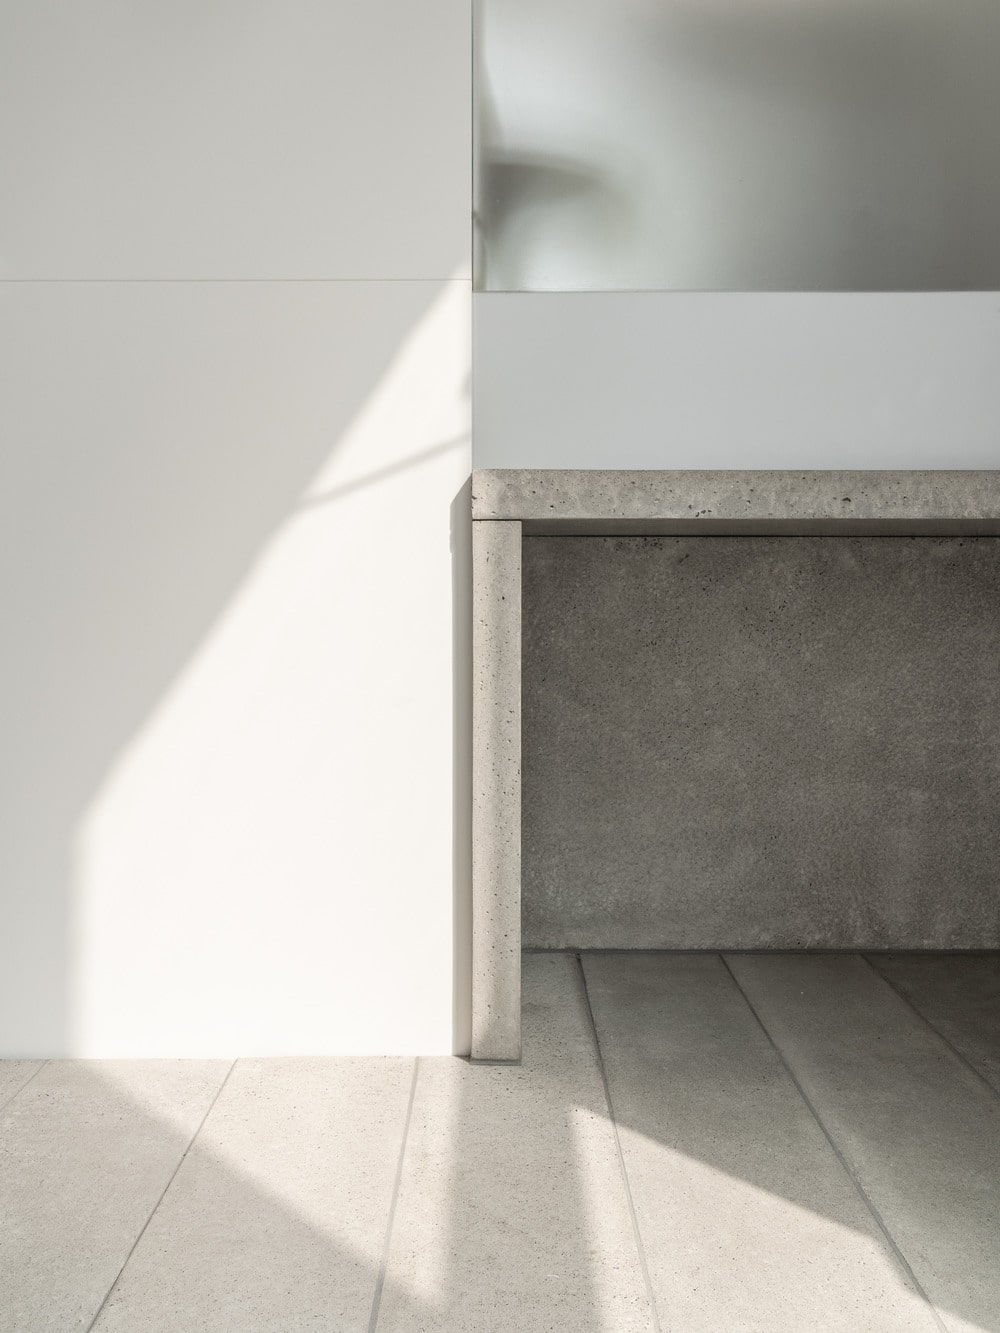 On the side of the foyer is the built-in concrete console table topped with a mirror.